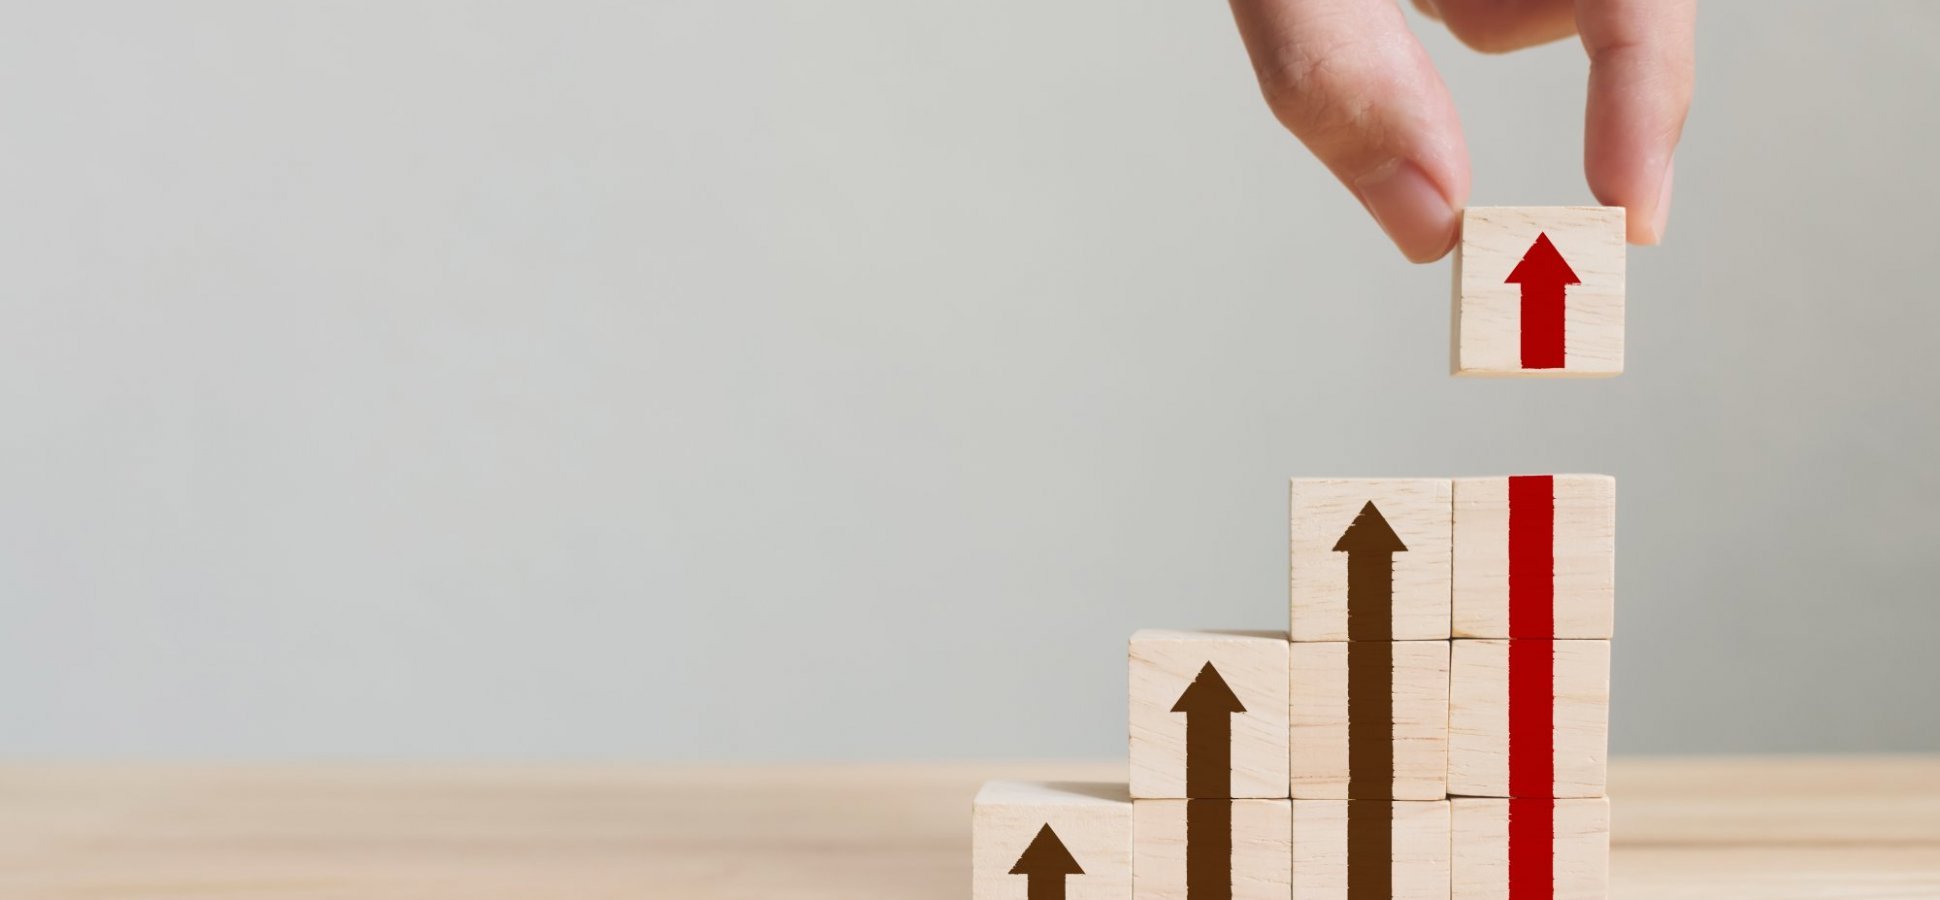 3 Simple Ways to Keep Your Business Growing and Improving Over Time